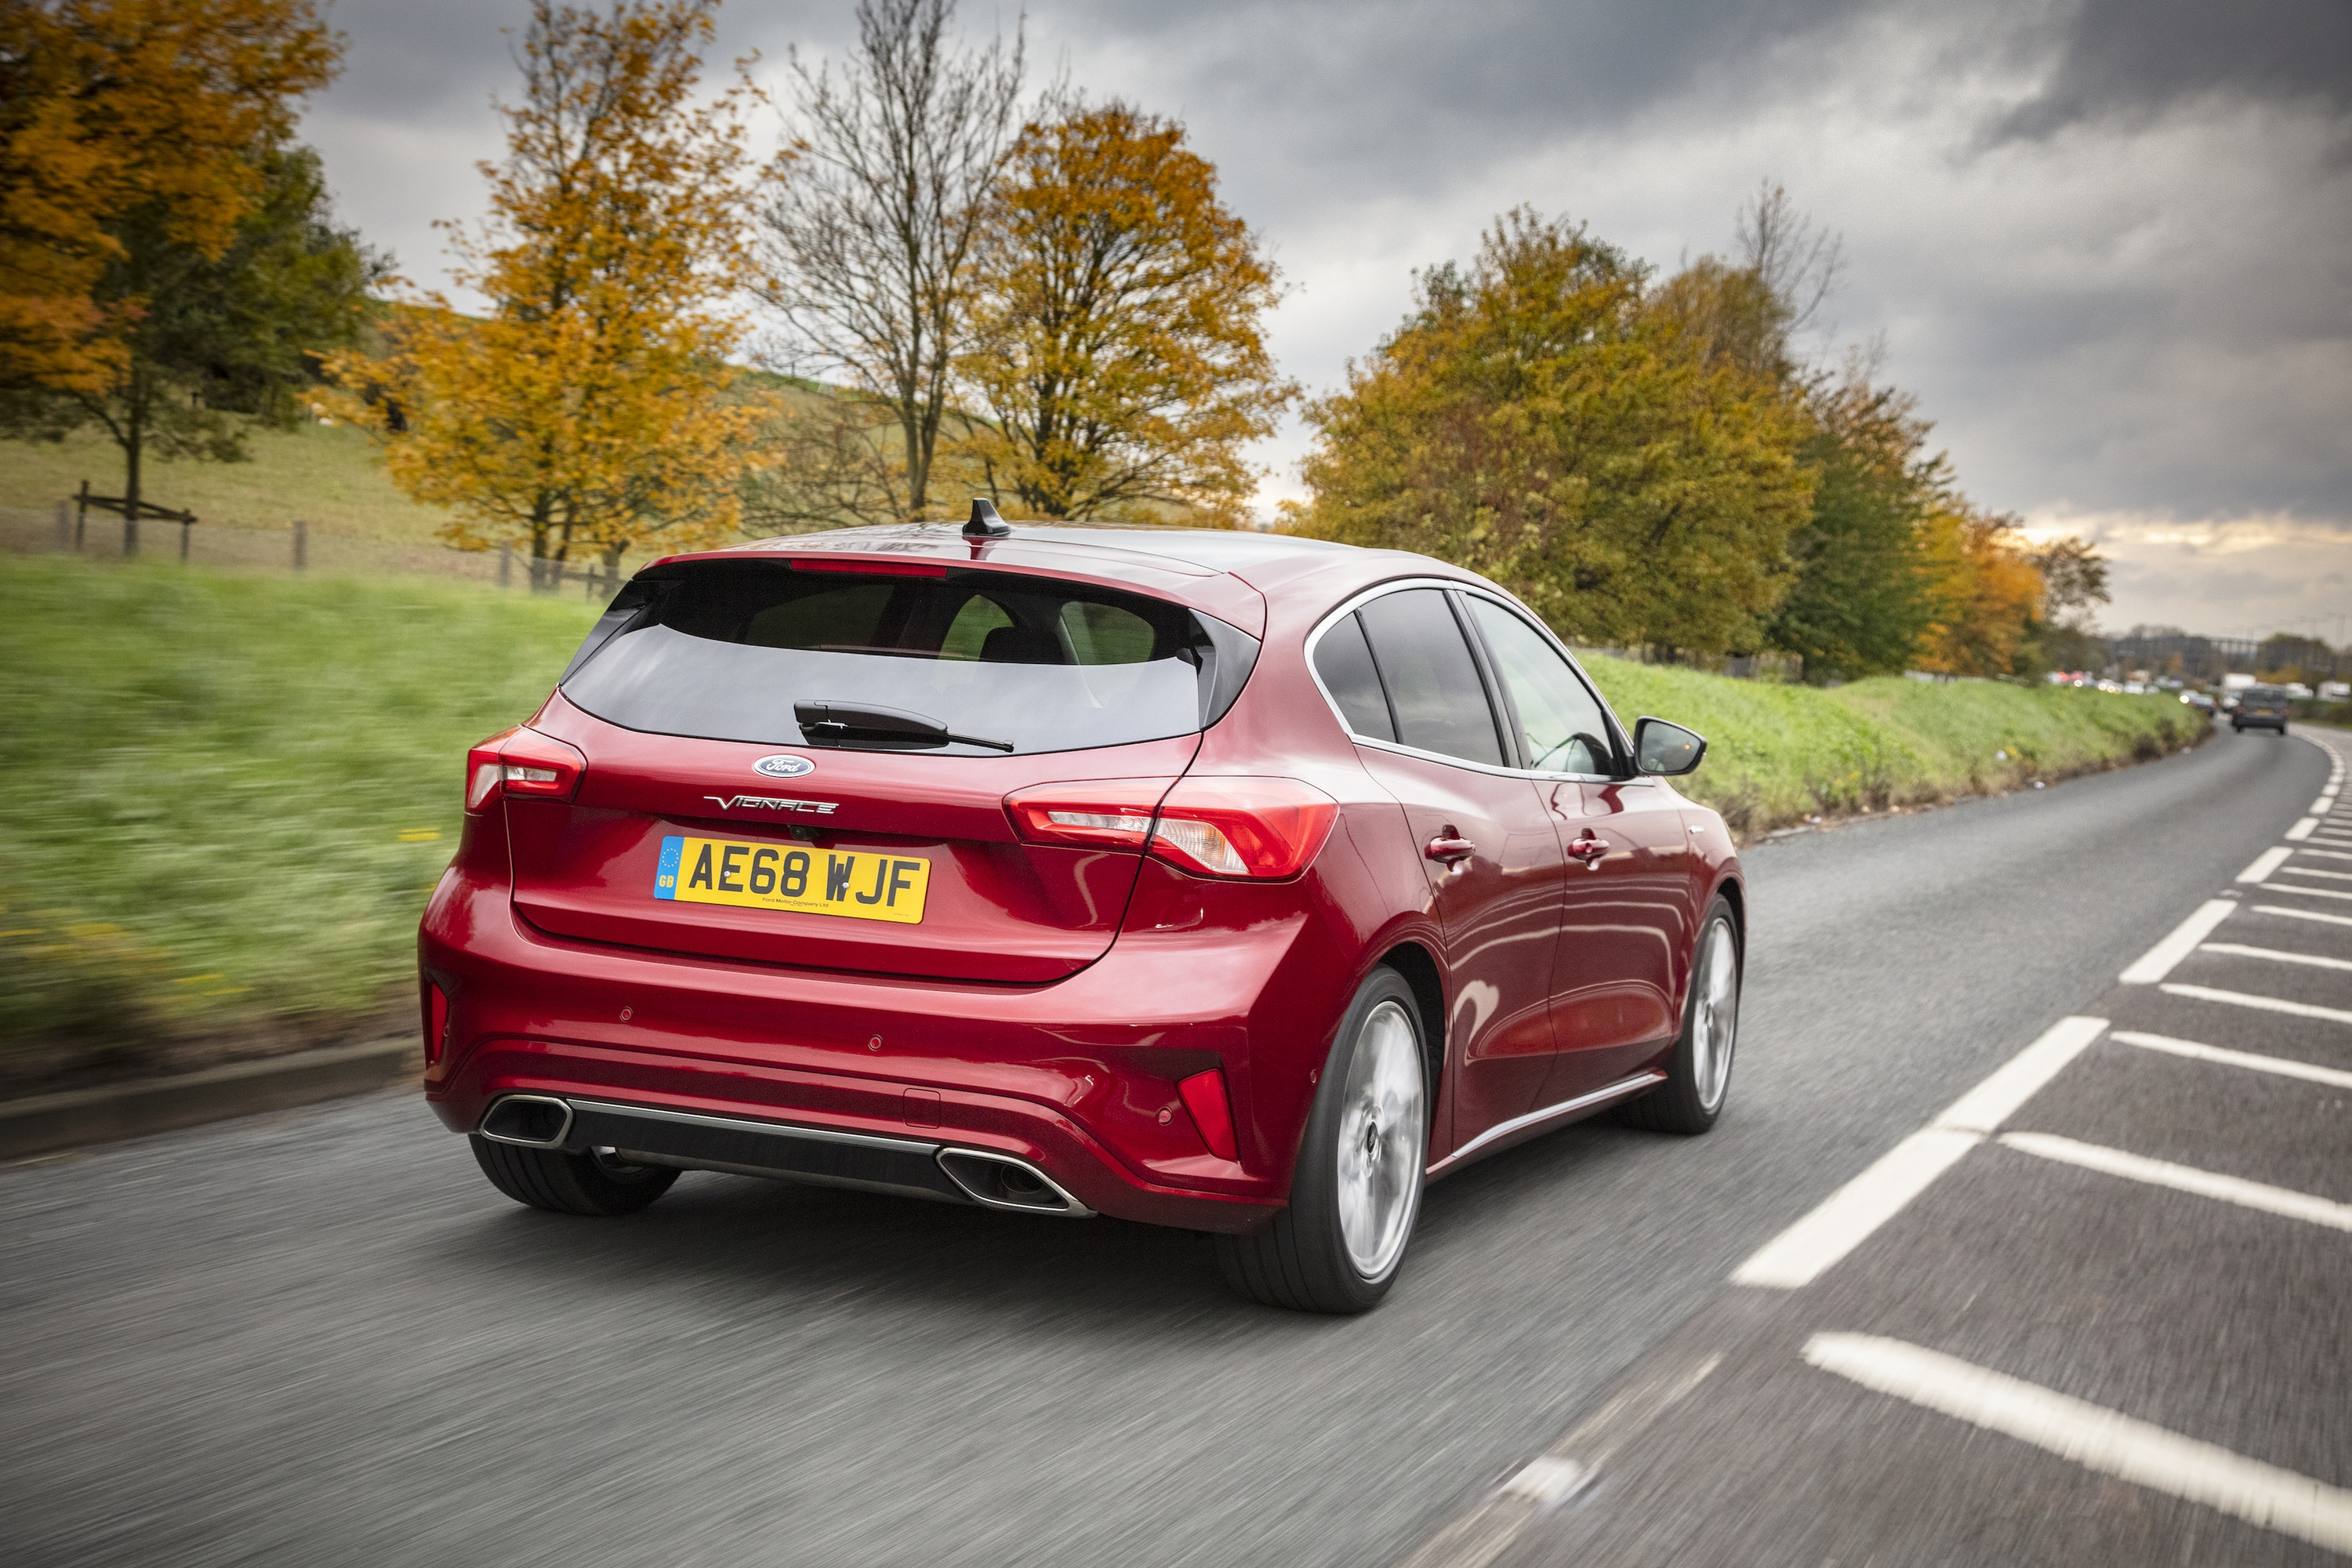 Rear view of red Ford Focus Vignale